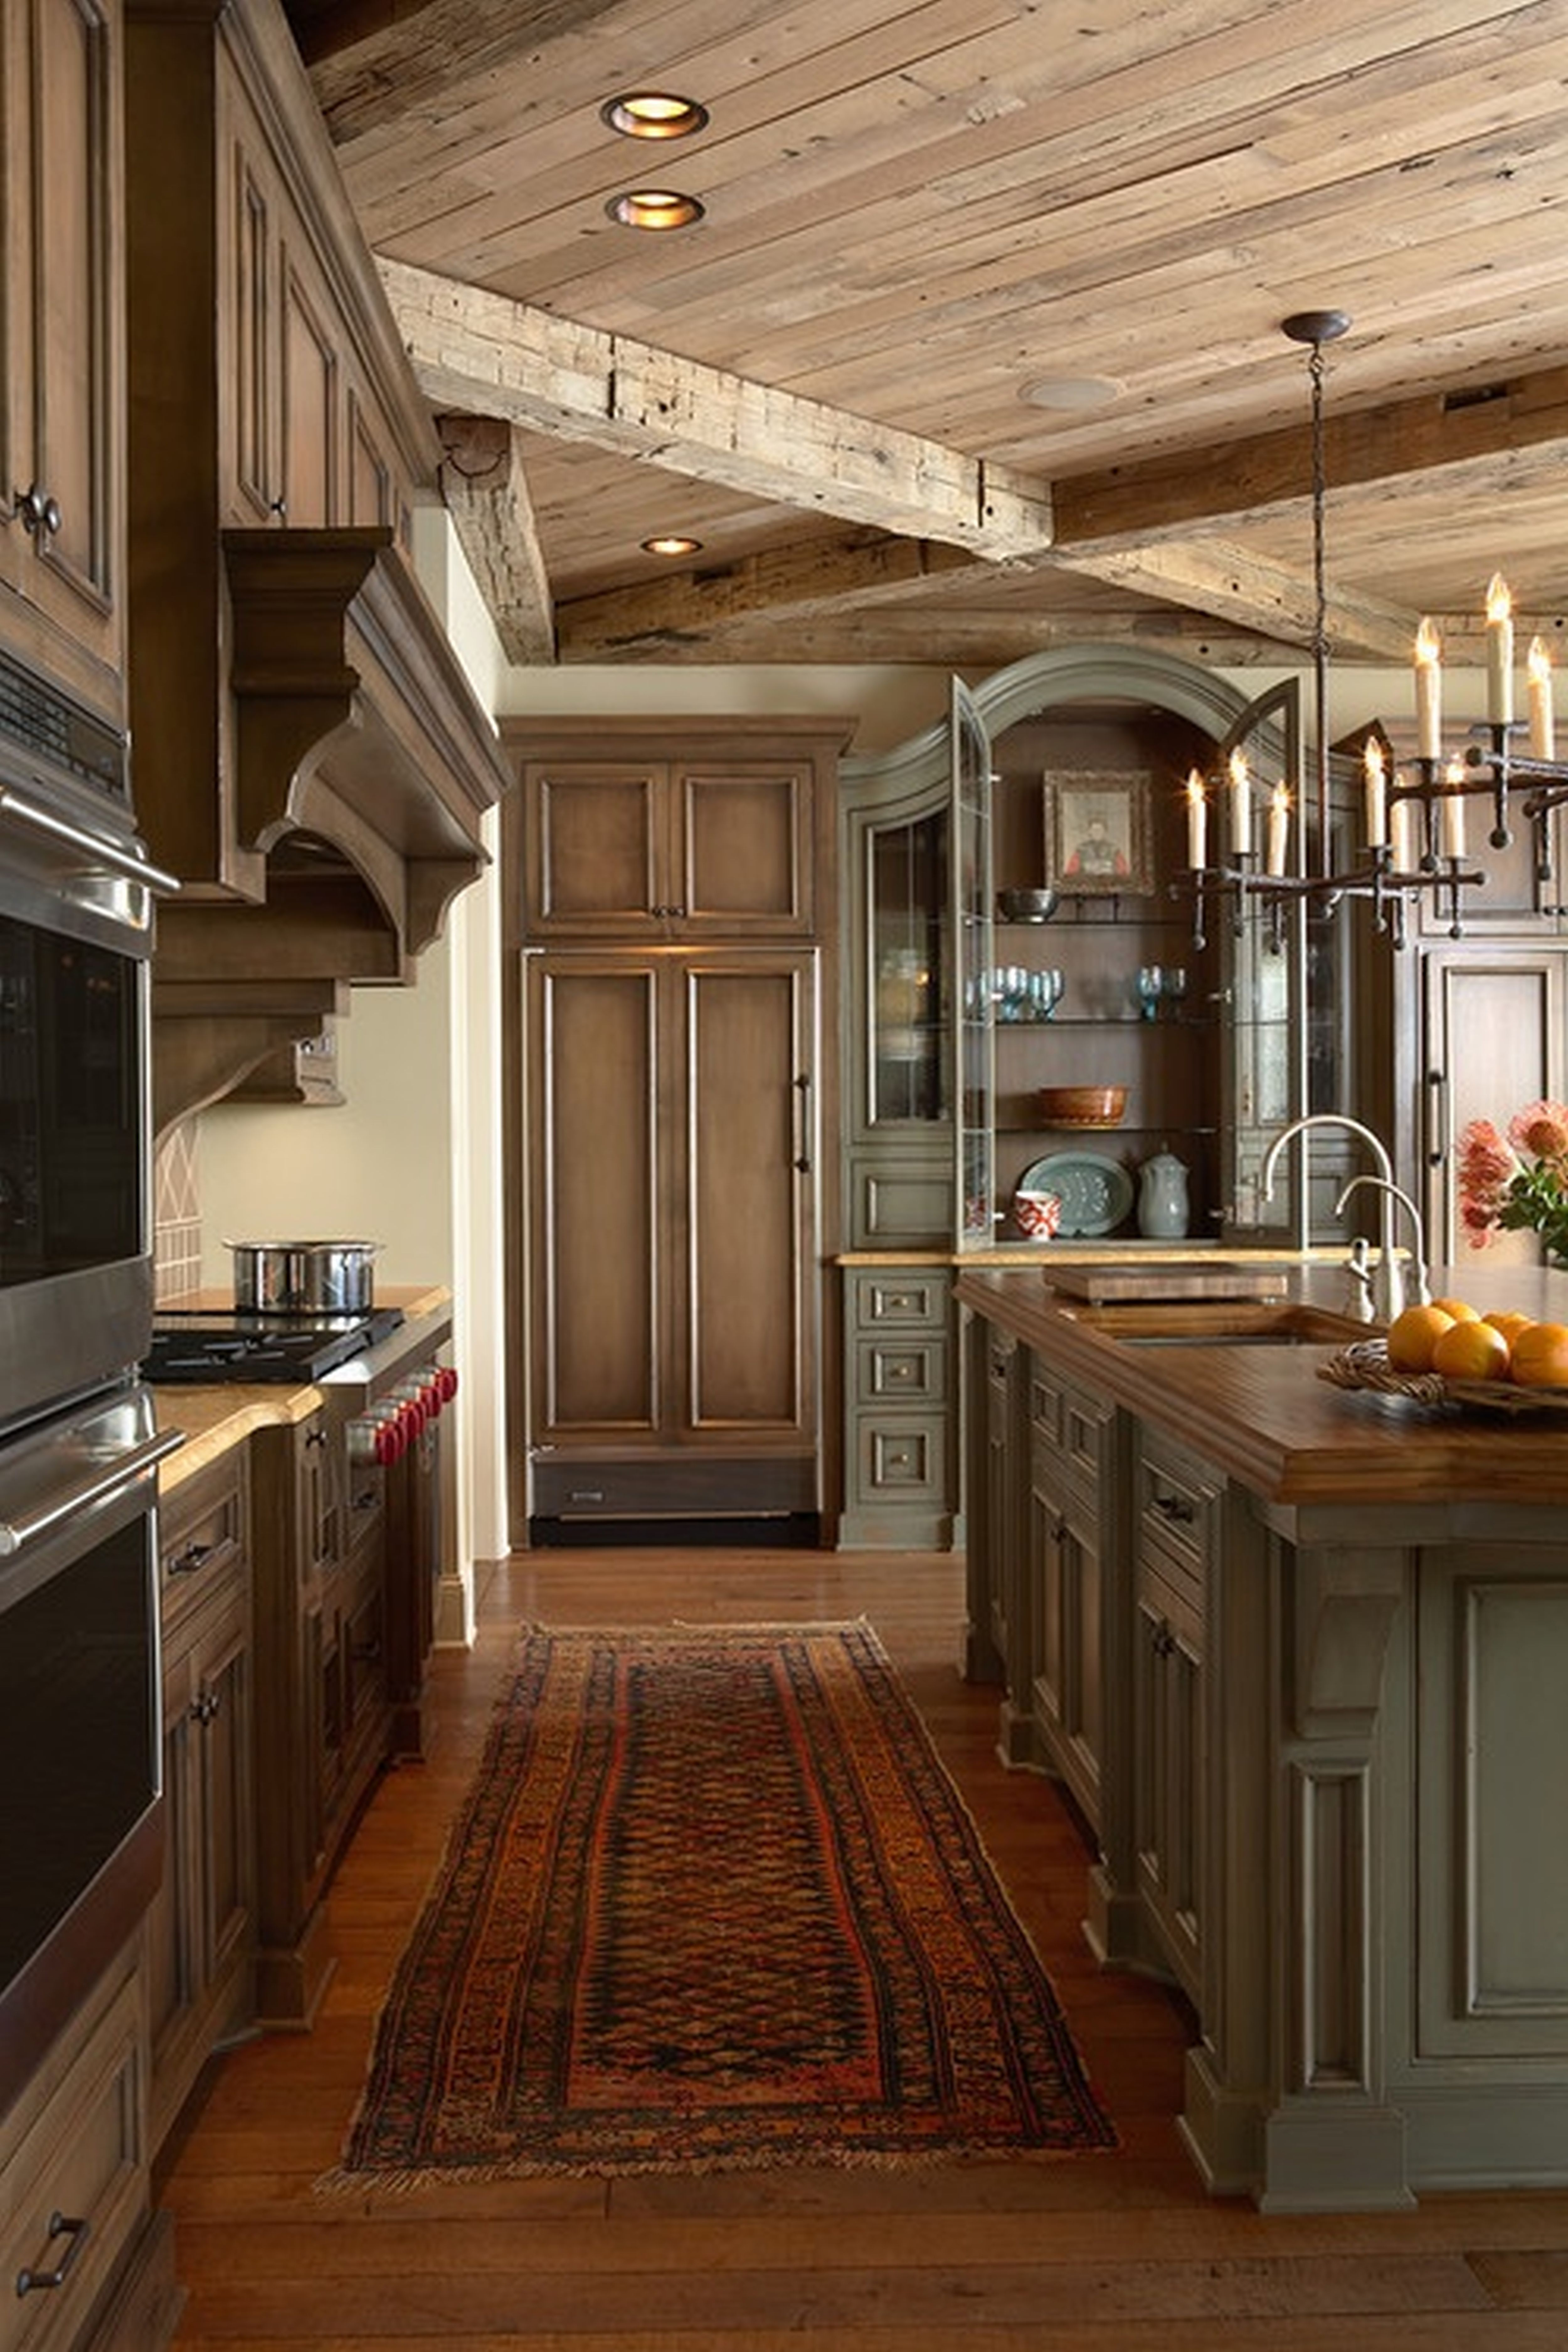 rustic ffooty kitchen cabinets